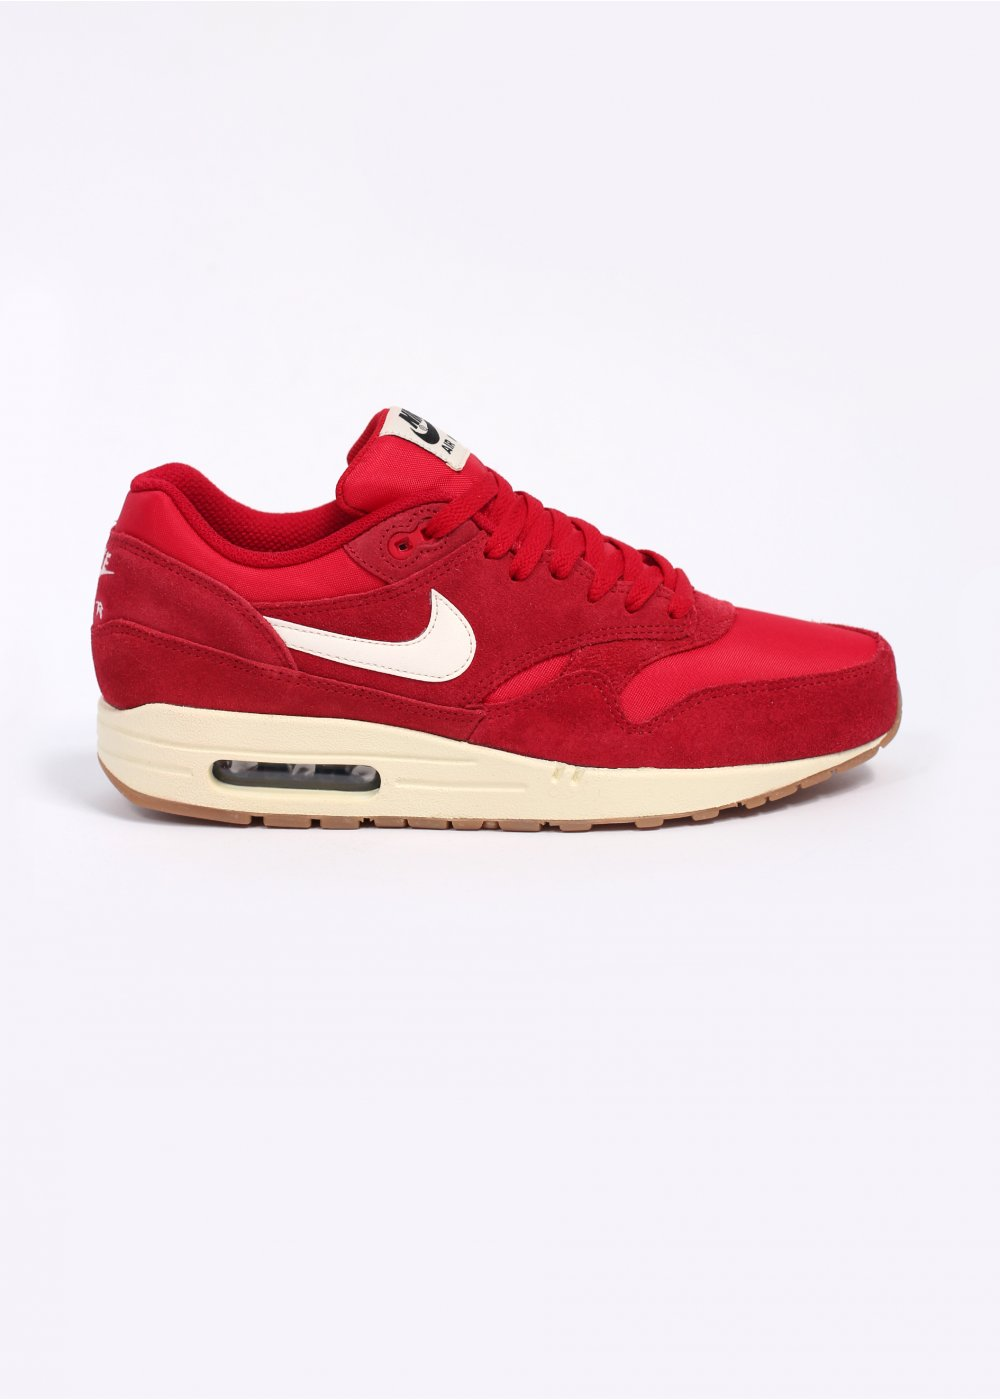 Nike Footwear Air Max 1 Essential Trainers Gym Red Sail